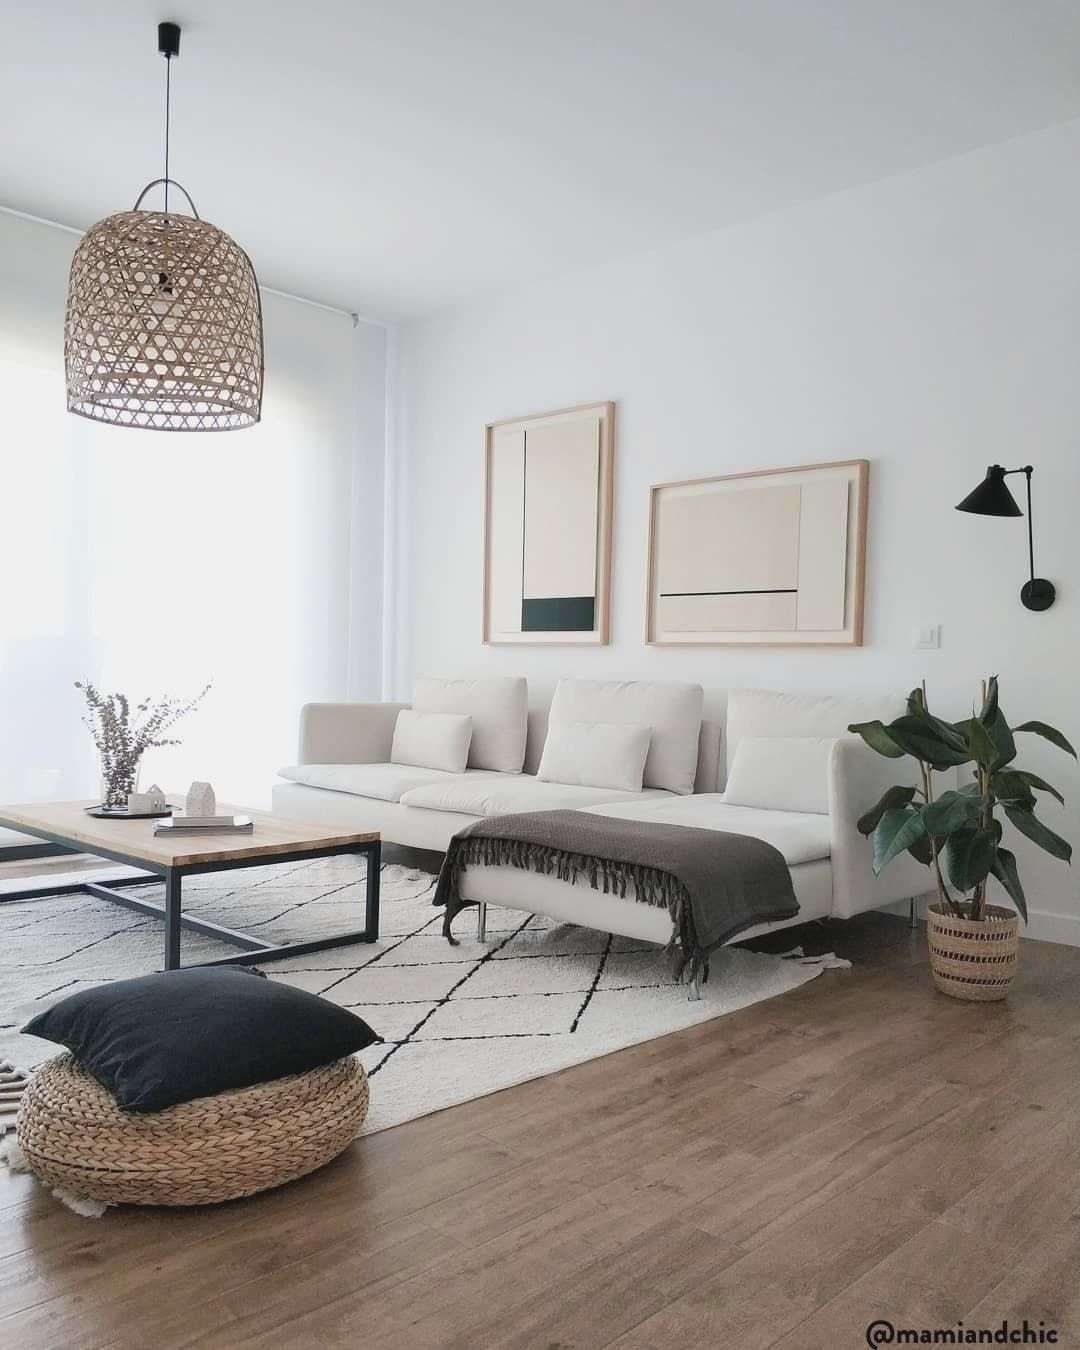 Wohnzimmer-WOW! ♡ Sofa in 2020 | Living room decor ...